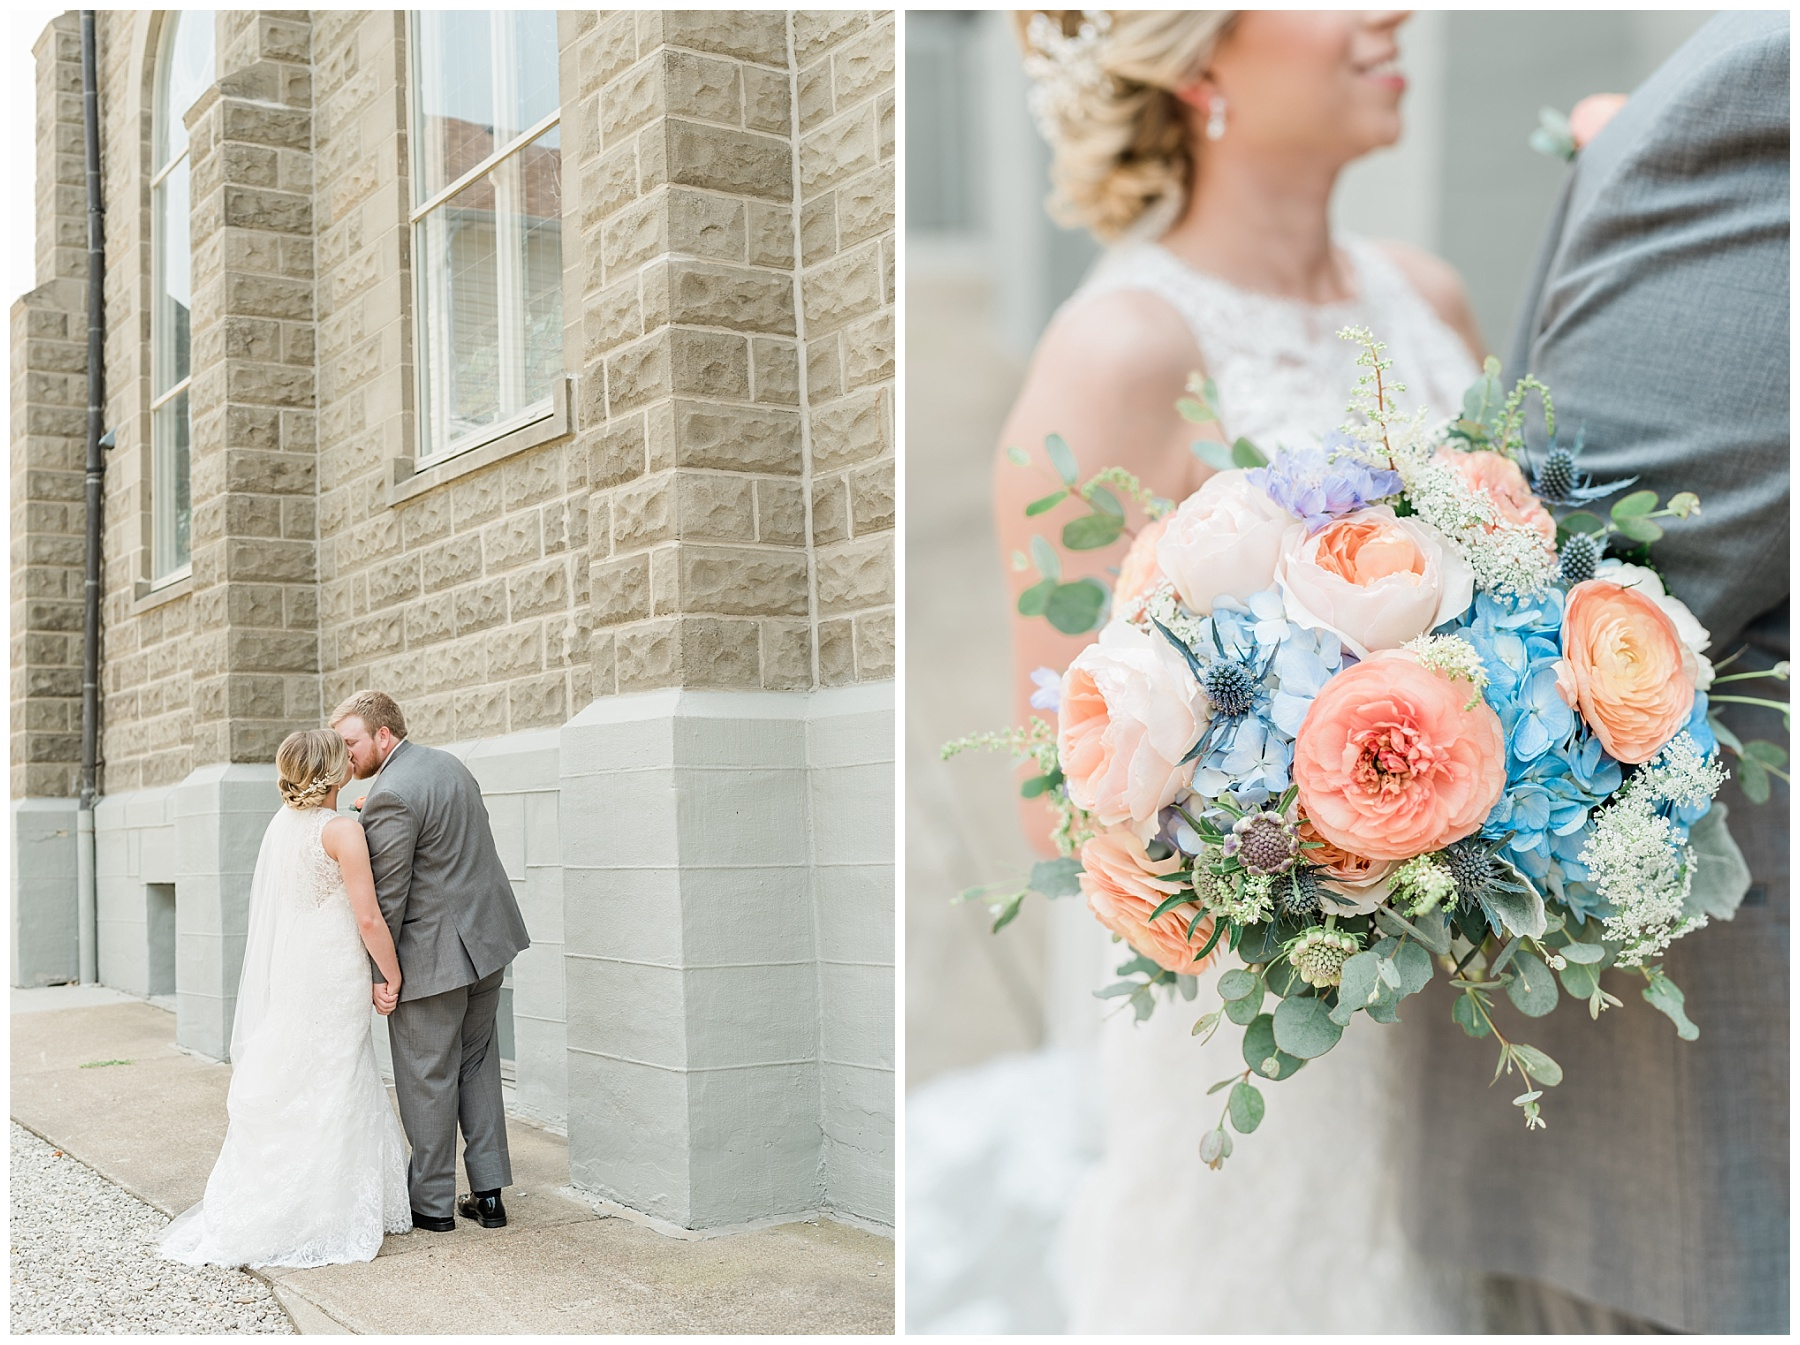 Peach and Dusty Blue Spring Wedding in Rolling Hills of Mid Missouri by Kelsi Kliethermes Photography Best Missouri and Maui Wedding Photographer_0032.jpg